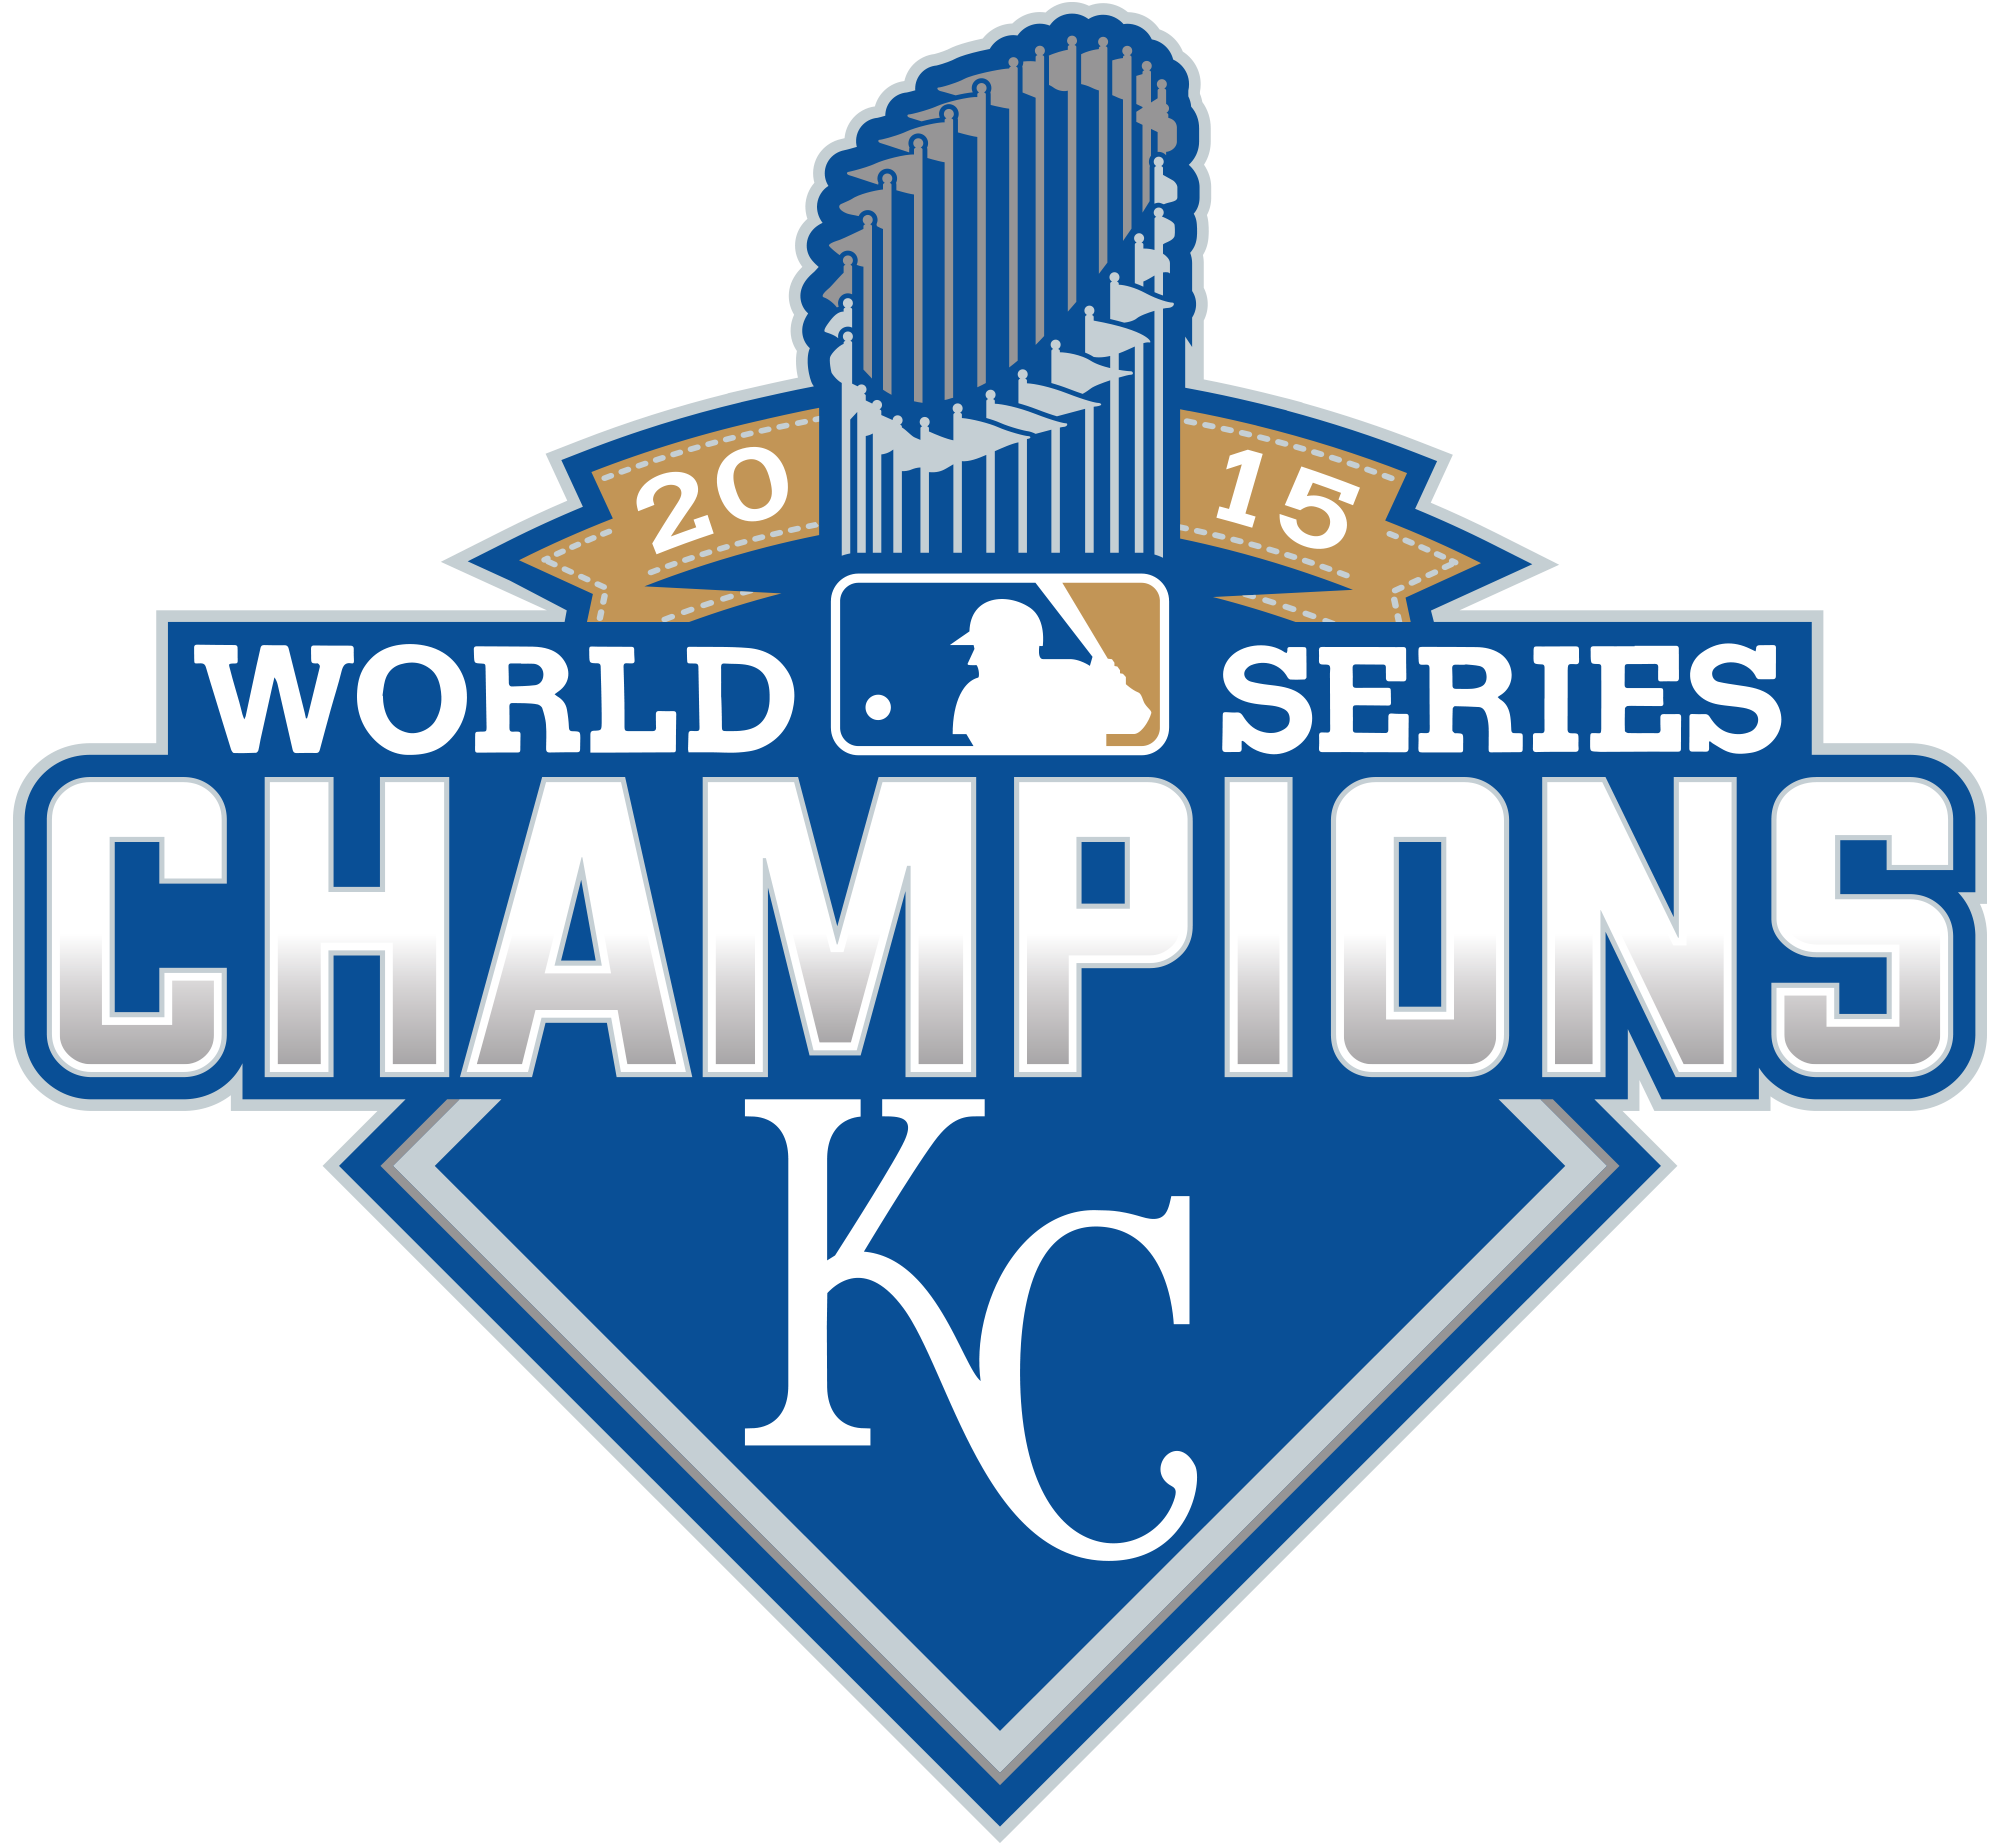 Chicago cubs world series logo png. Champs vector file kcroyals